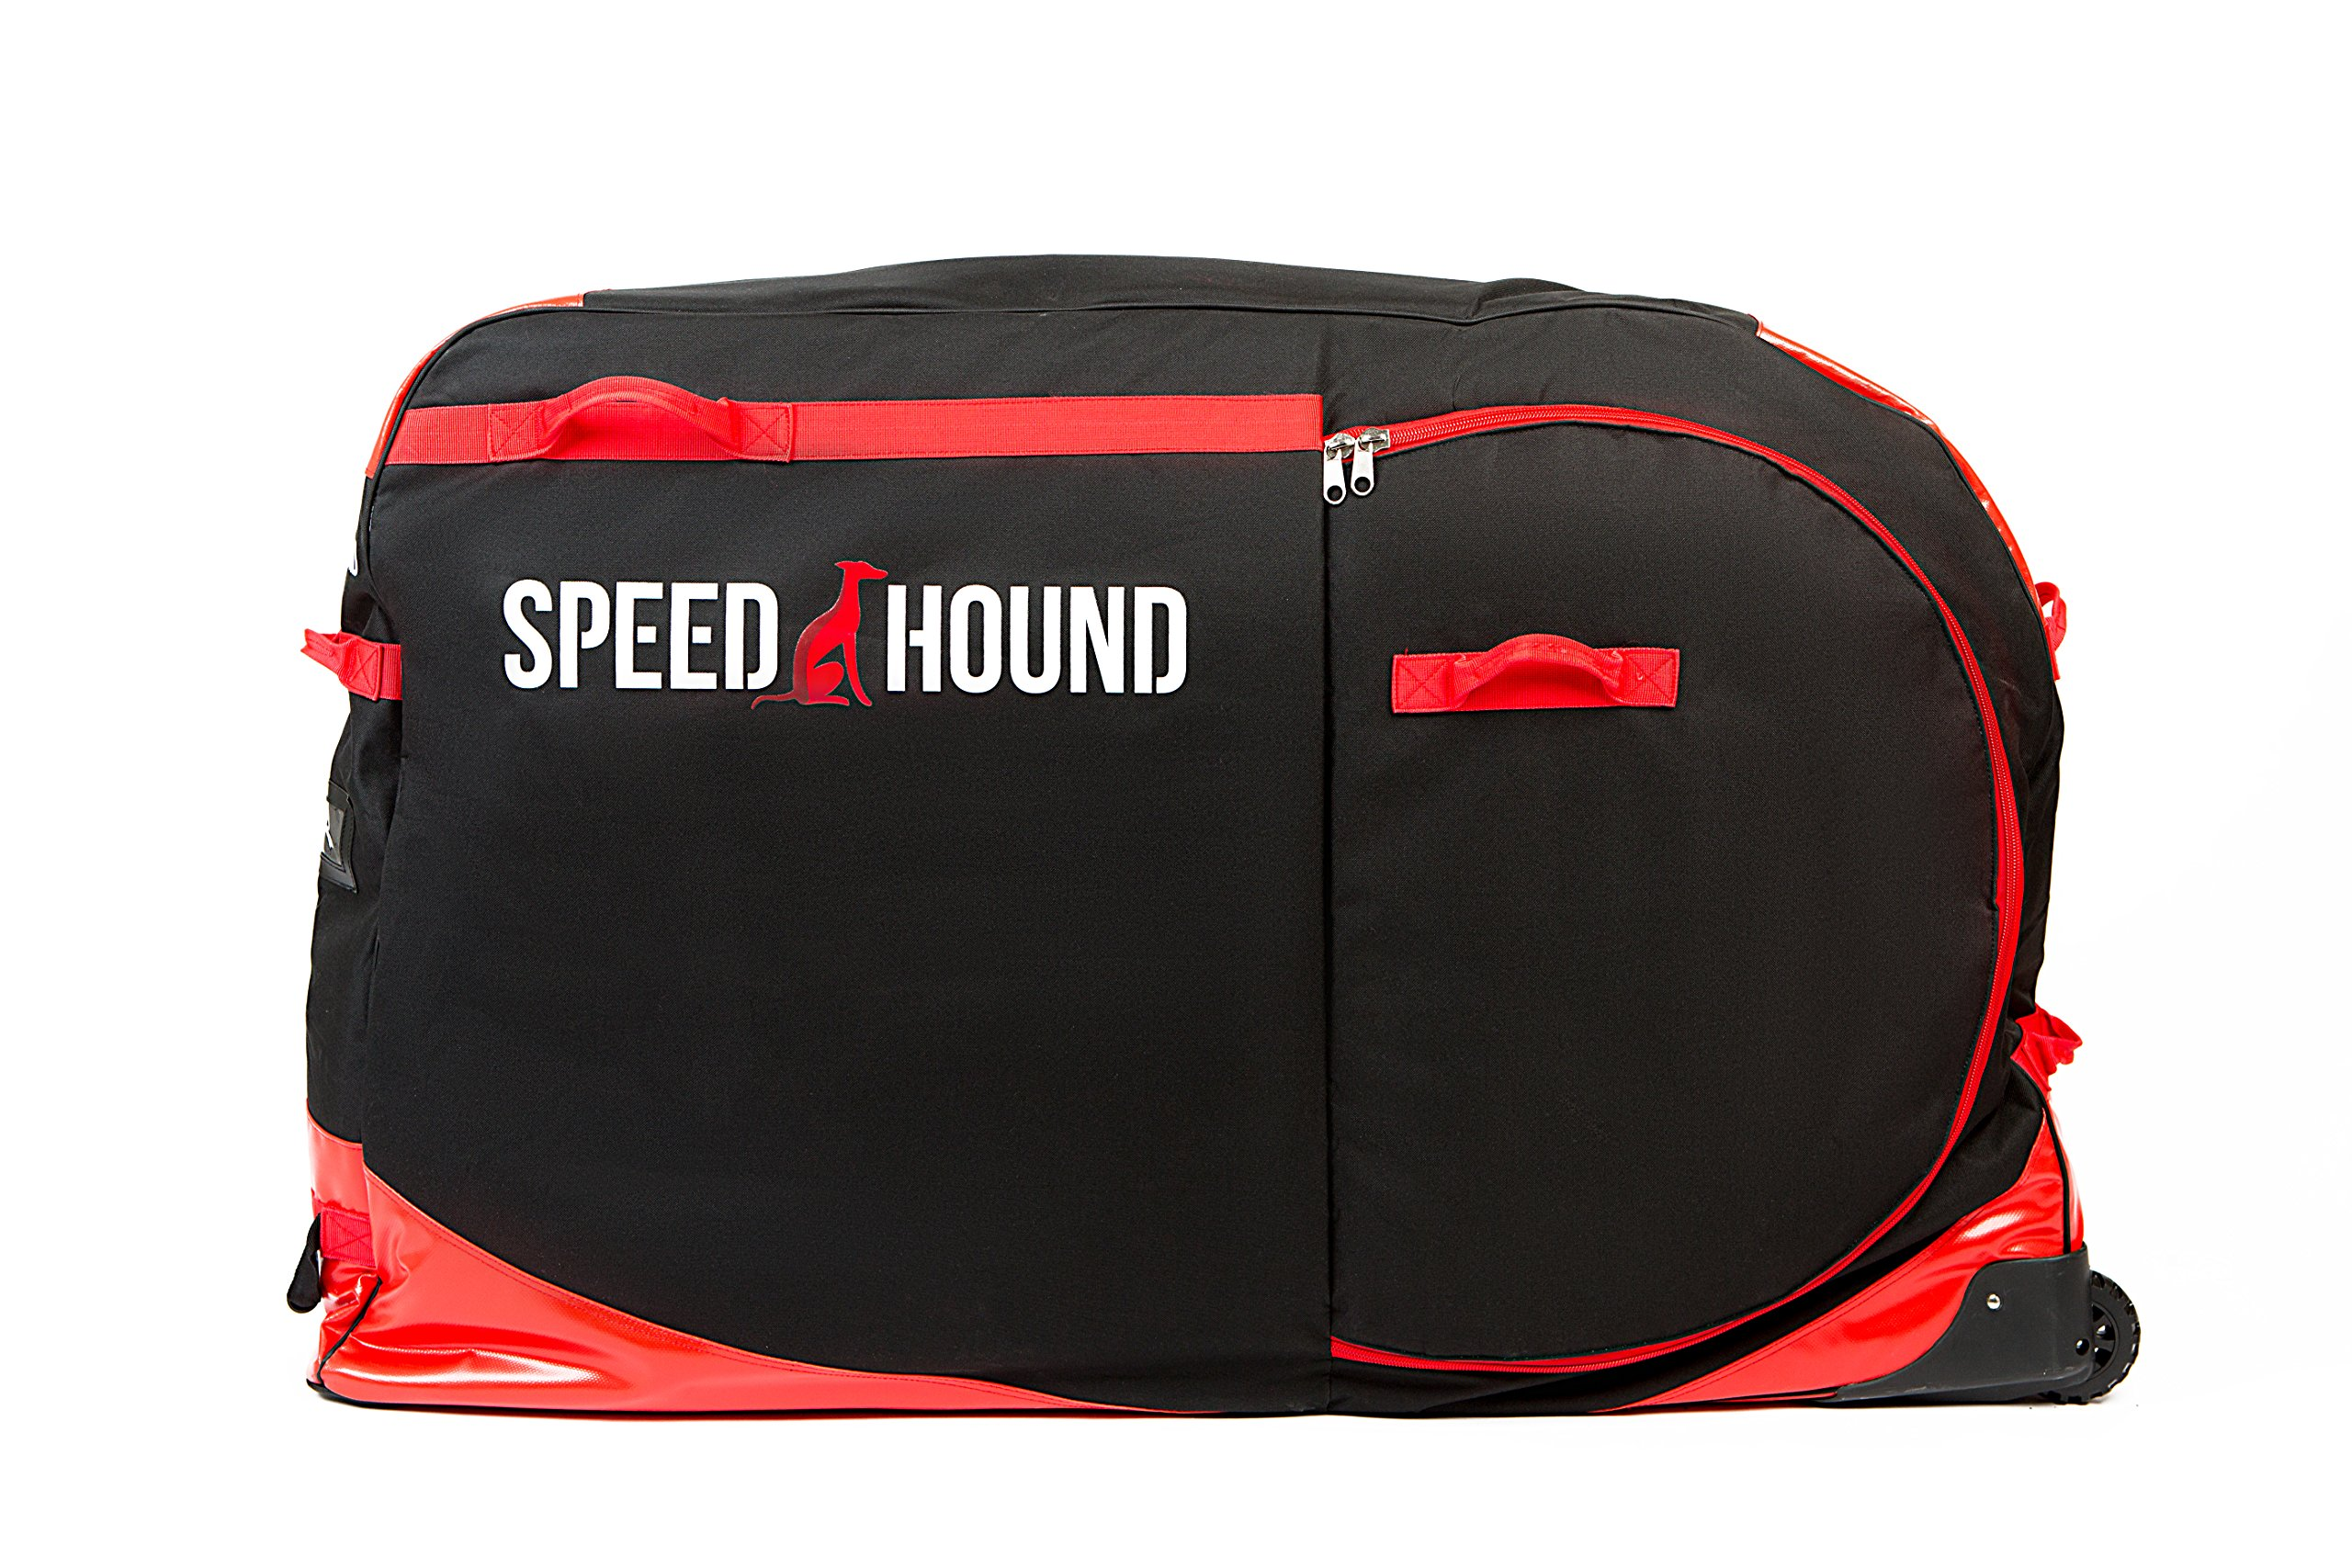 Flash Sale! Speed Hound FREEDOM Road and Mountain Bike Travel Bag/Case